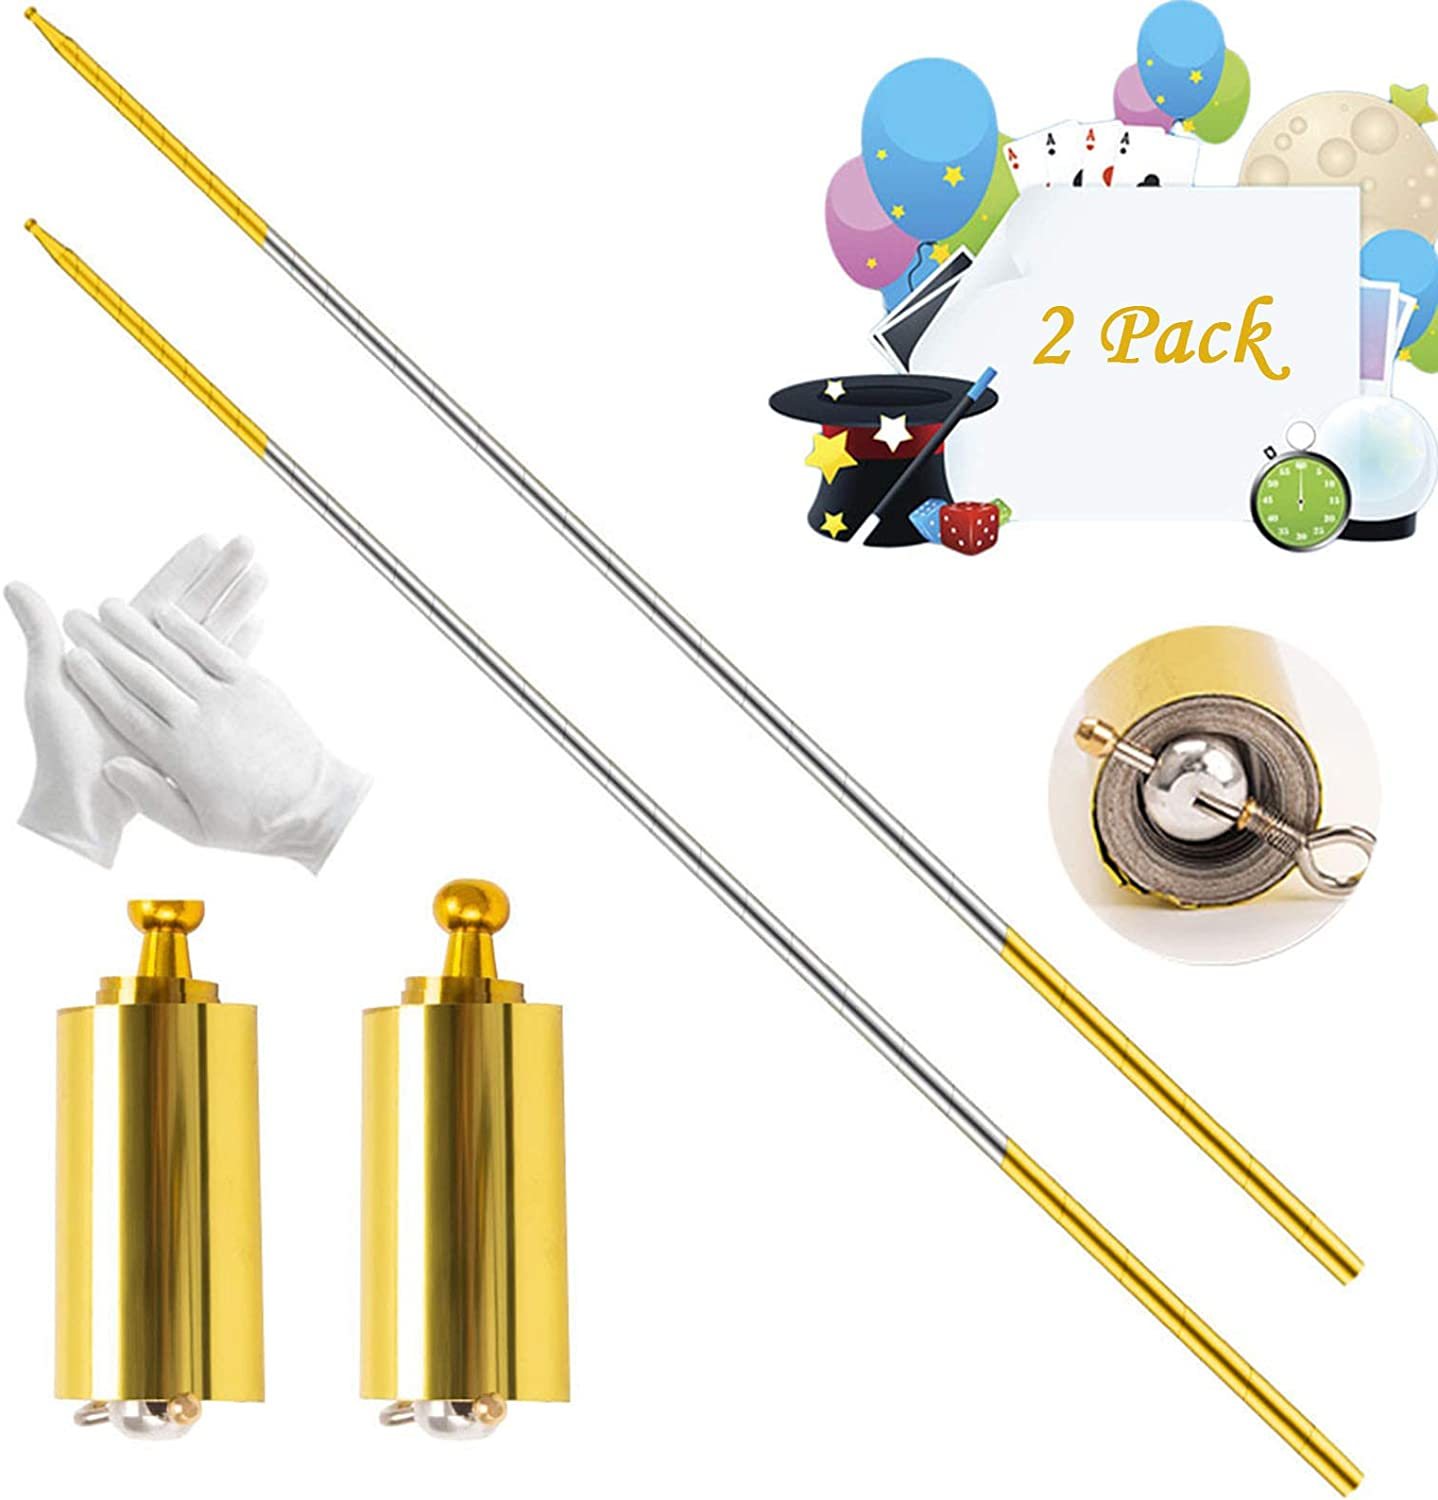 Collapsible Metal Appearing Cane Golden Silver, 43.3in Gifts and Magicians Professional Magician Stage Portable Pocket Arts Staff Magic Tricks Accessories for Adults 2 Pack Magic Pocket Staff